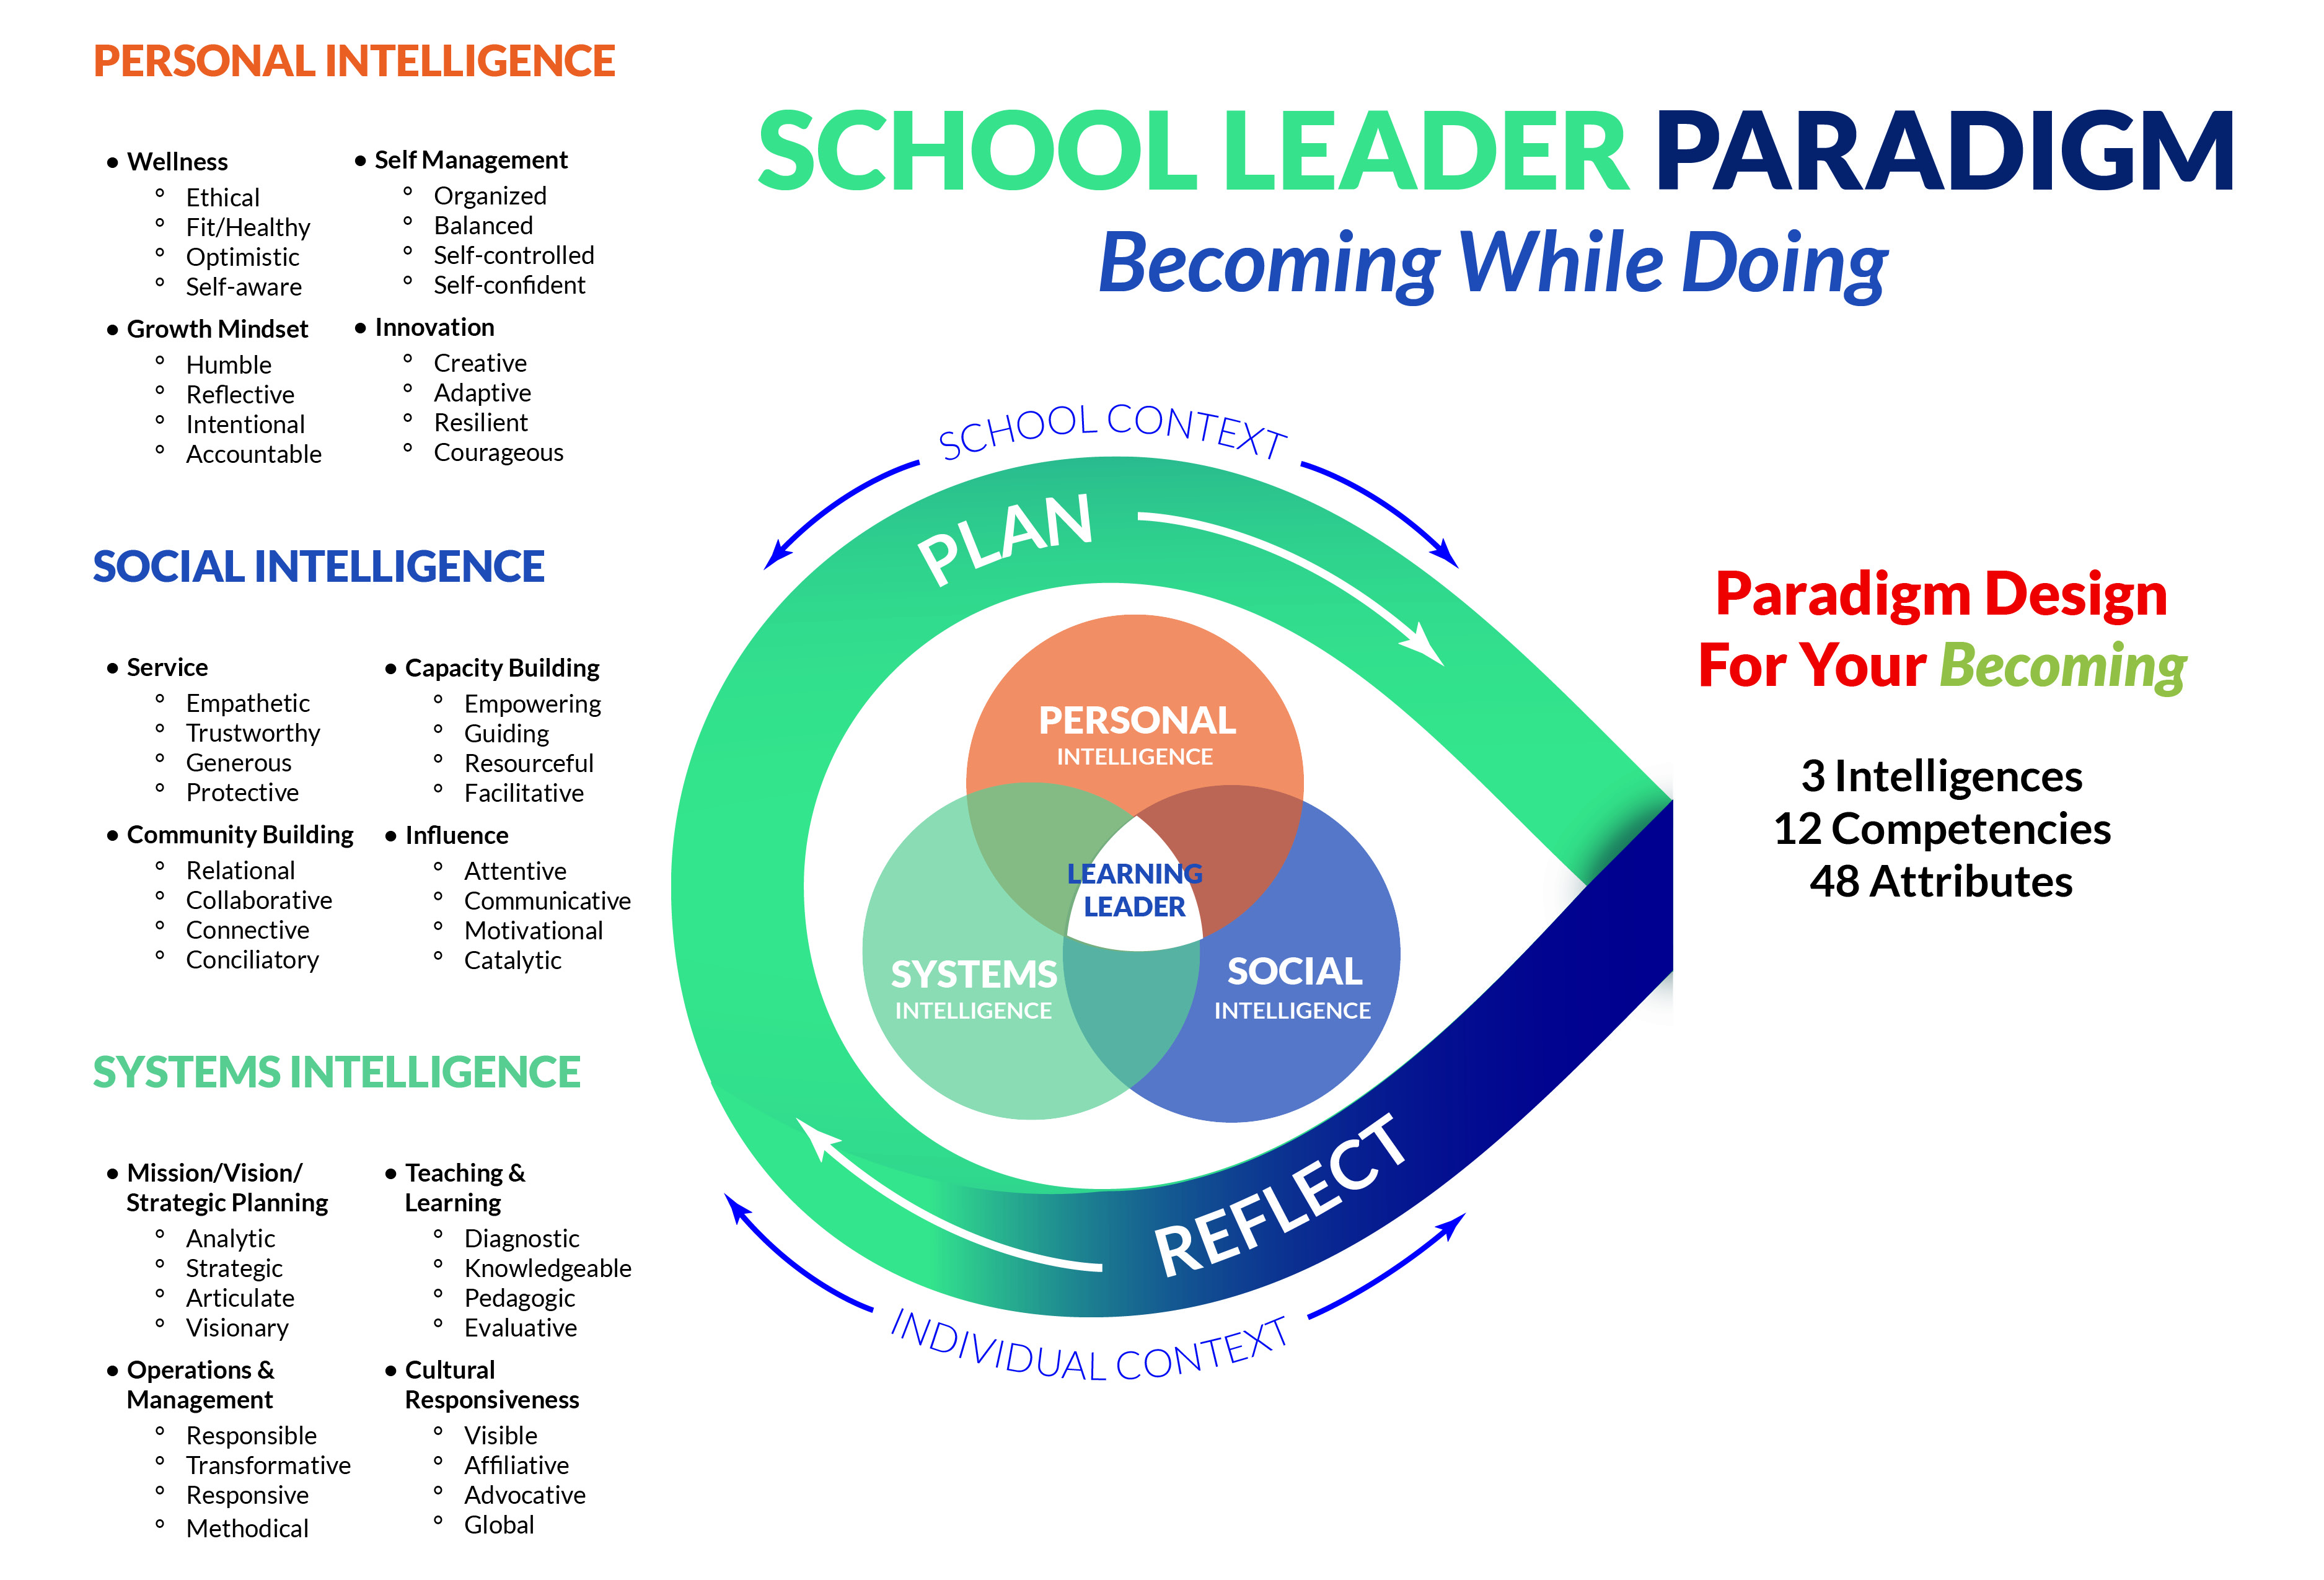 Figure 2:  The Detailed Architecture of Becoming a Learning Leader, per the School Leader Paradigm